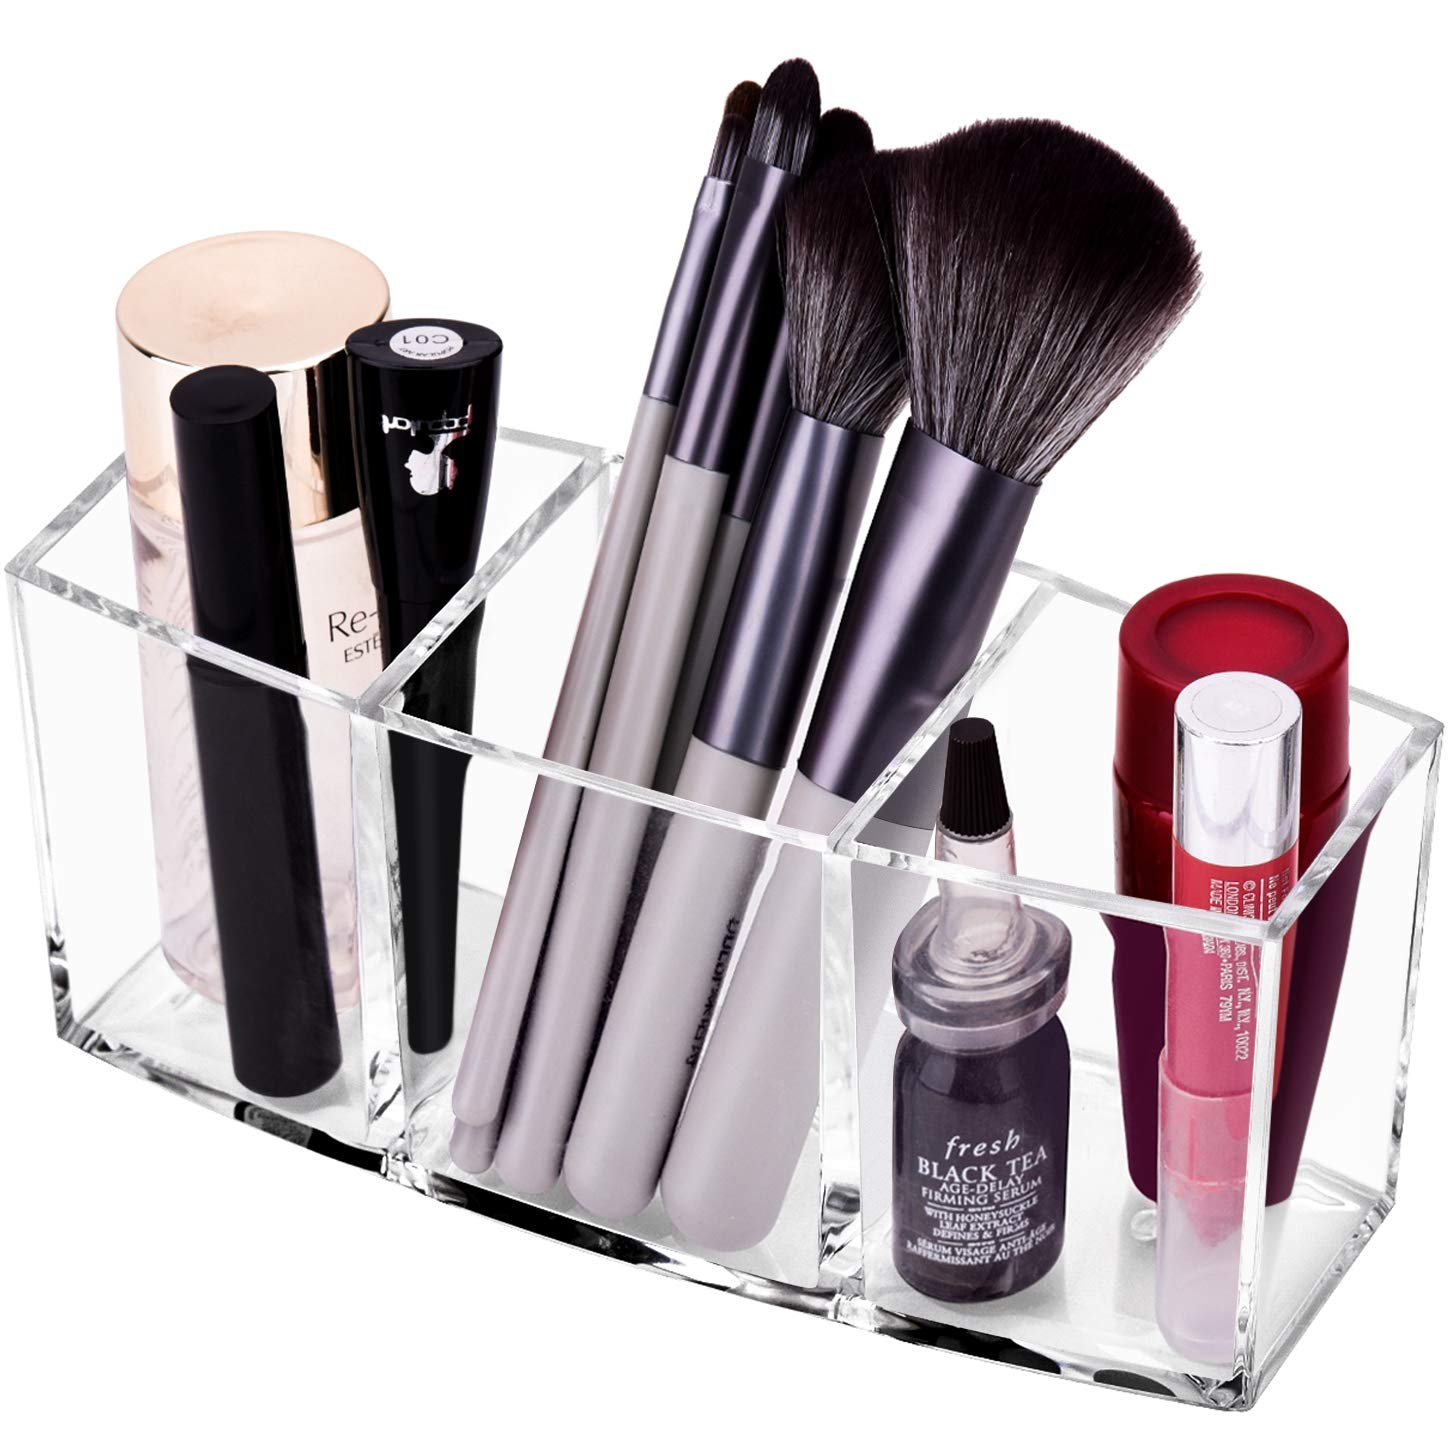 CACASO Clear Makeup Brush Organizer, Premium Acrylic Makeup Brush Holder Organizer 3 Compartments, Makeup Brush Display Holder Cosmetic Storage (Style2)